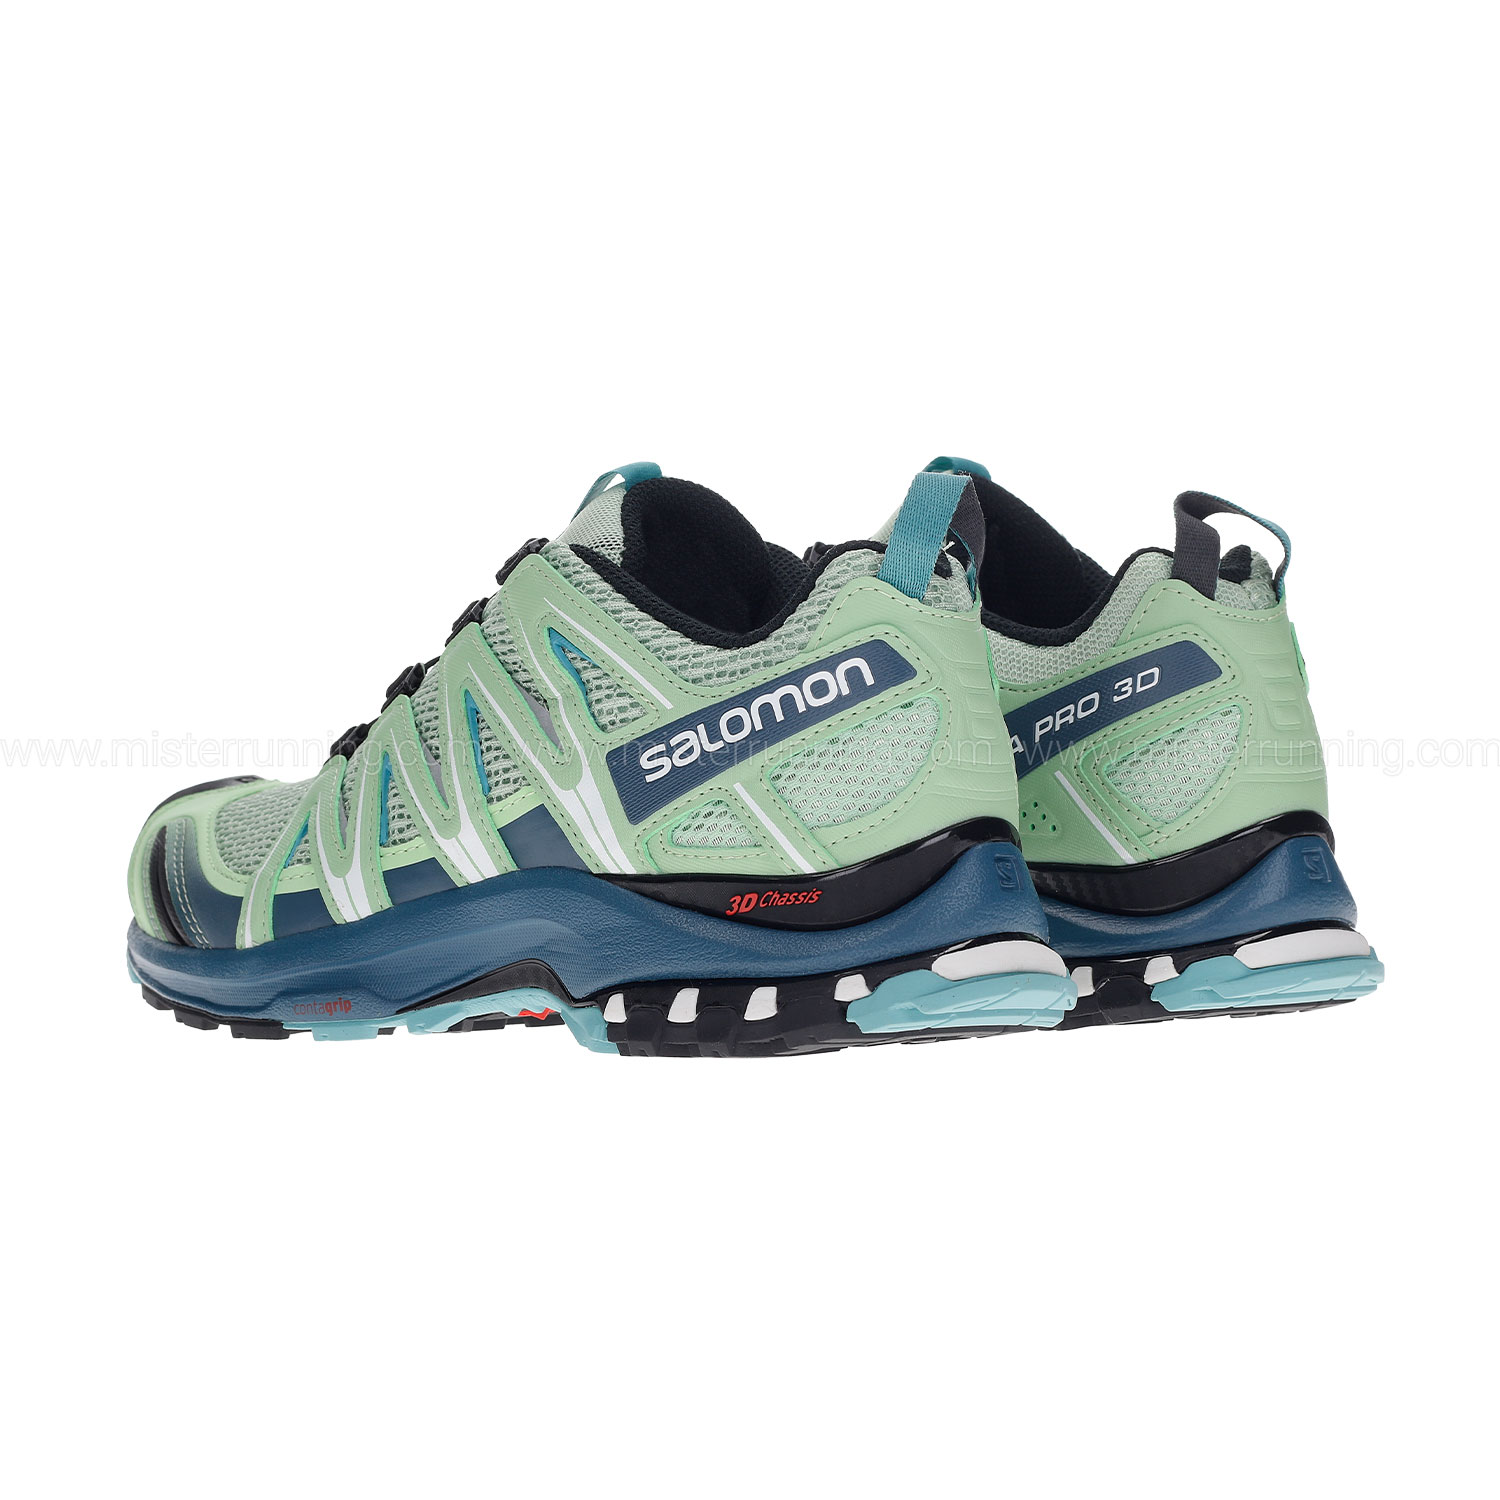 Salomon XA Pro 3D - Spruce Stone/Indian Teal/Meadowbroo